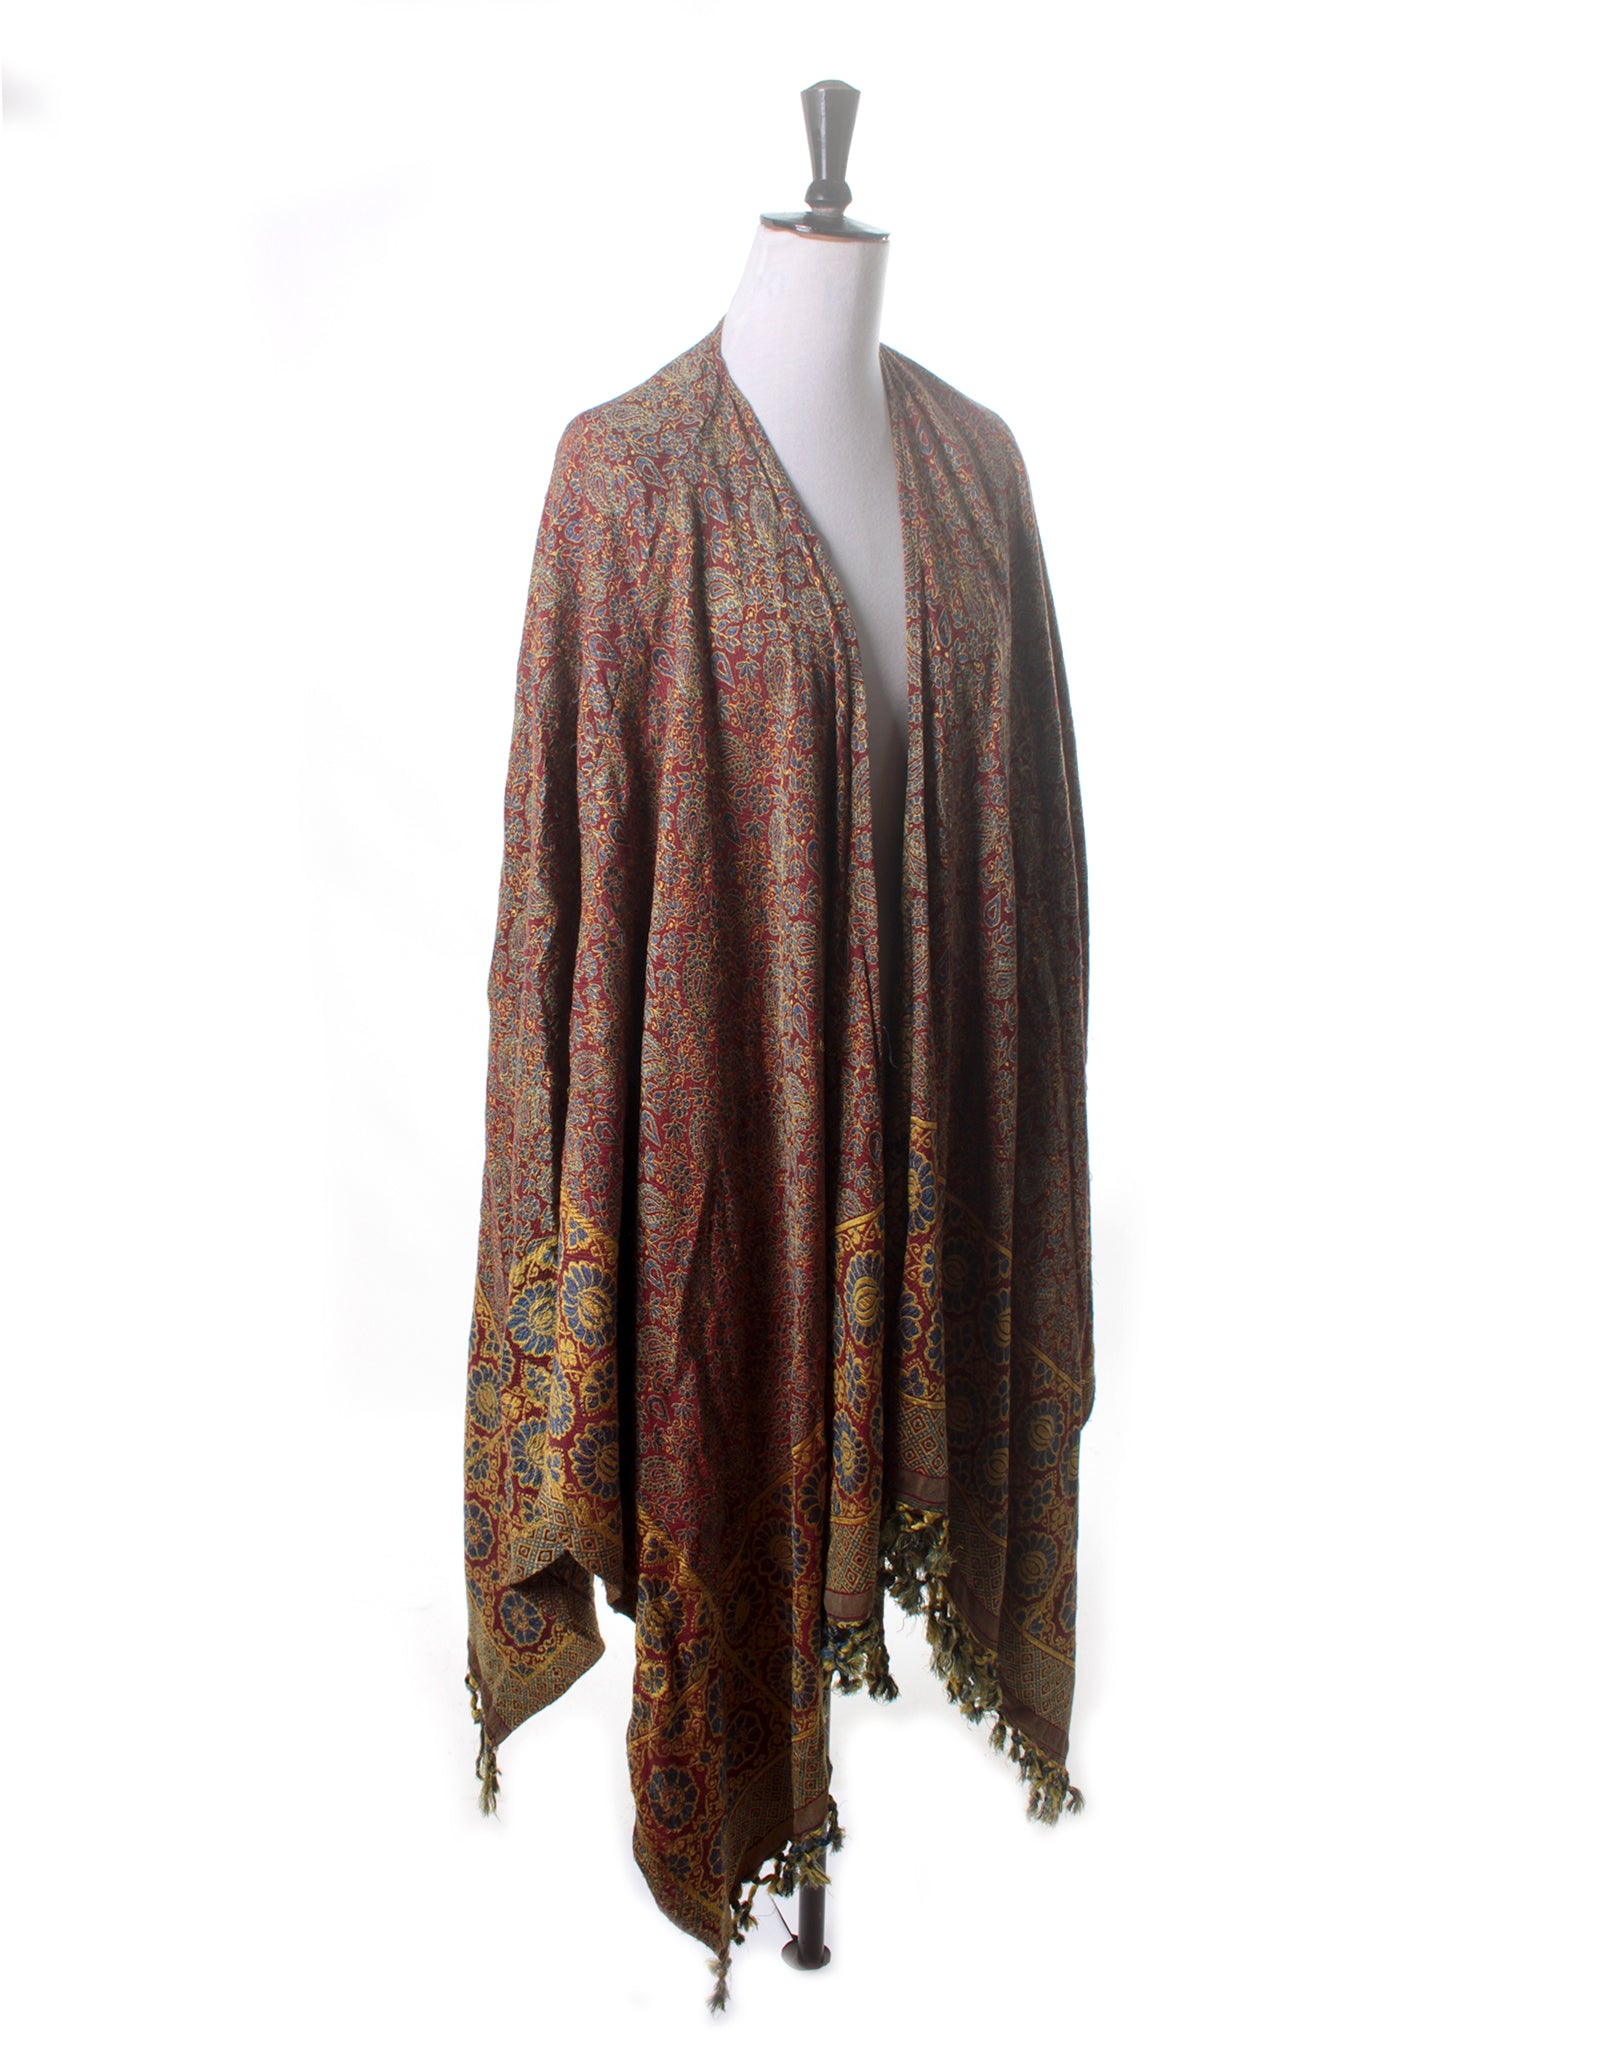 Large Vintage Boho Brocade Shawl Wrap